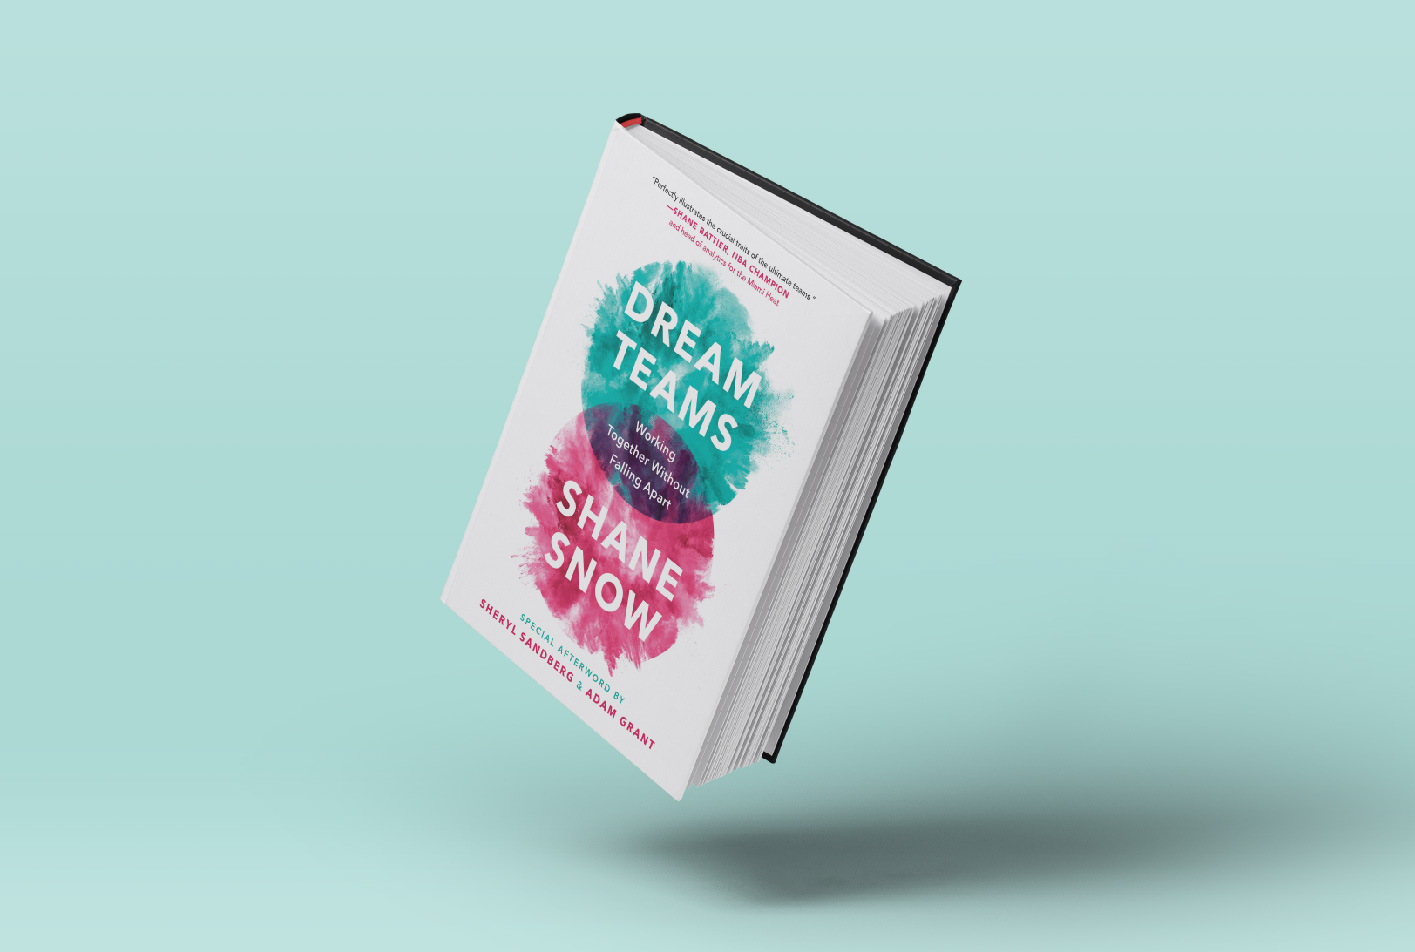 dream teams shane snow excerpt book cover